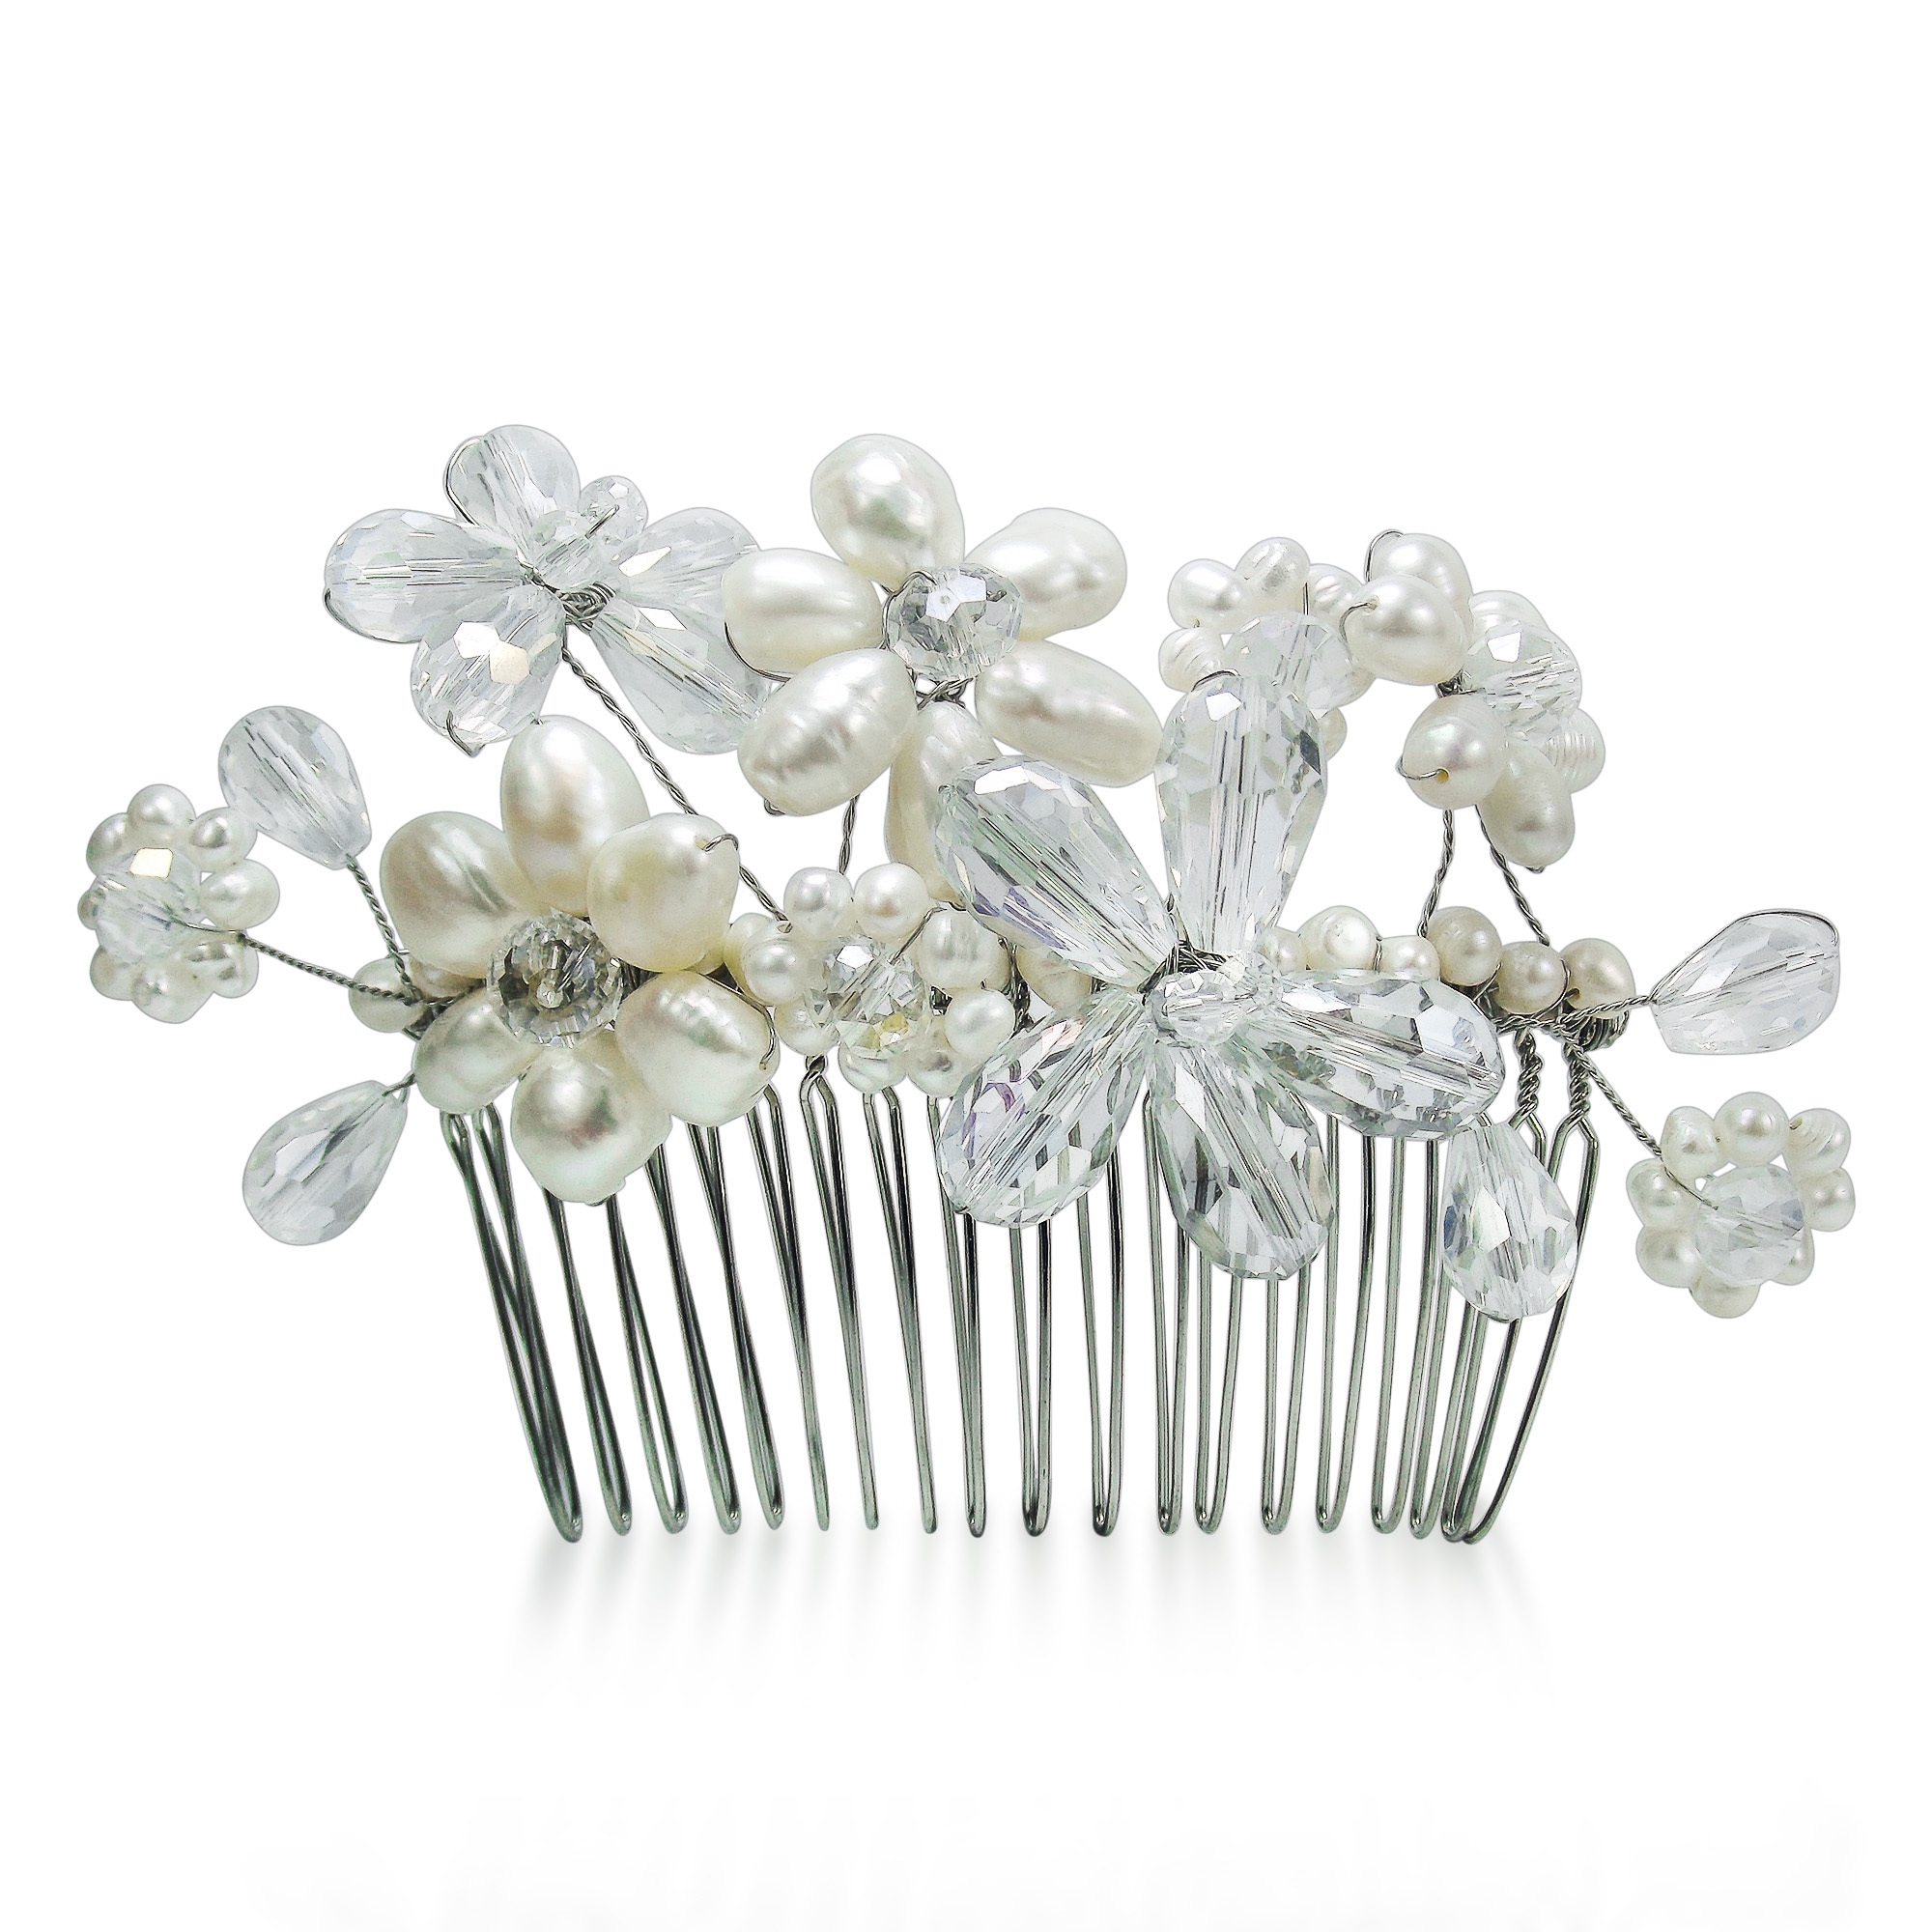 Shop Handmade Floral Serenity White Pearls And Crystals Bridal Hair Comb Thailand Overstock 9108848